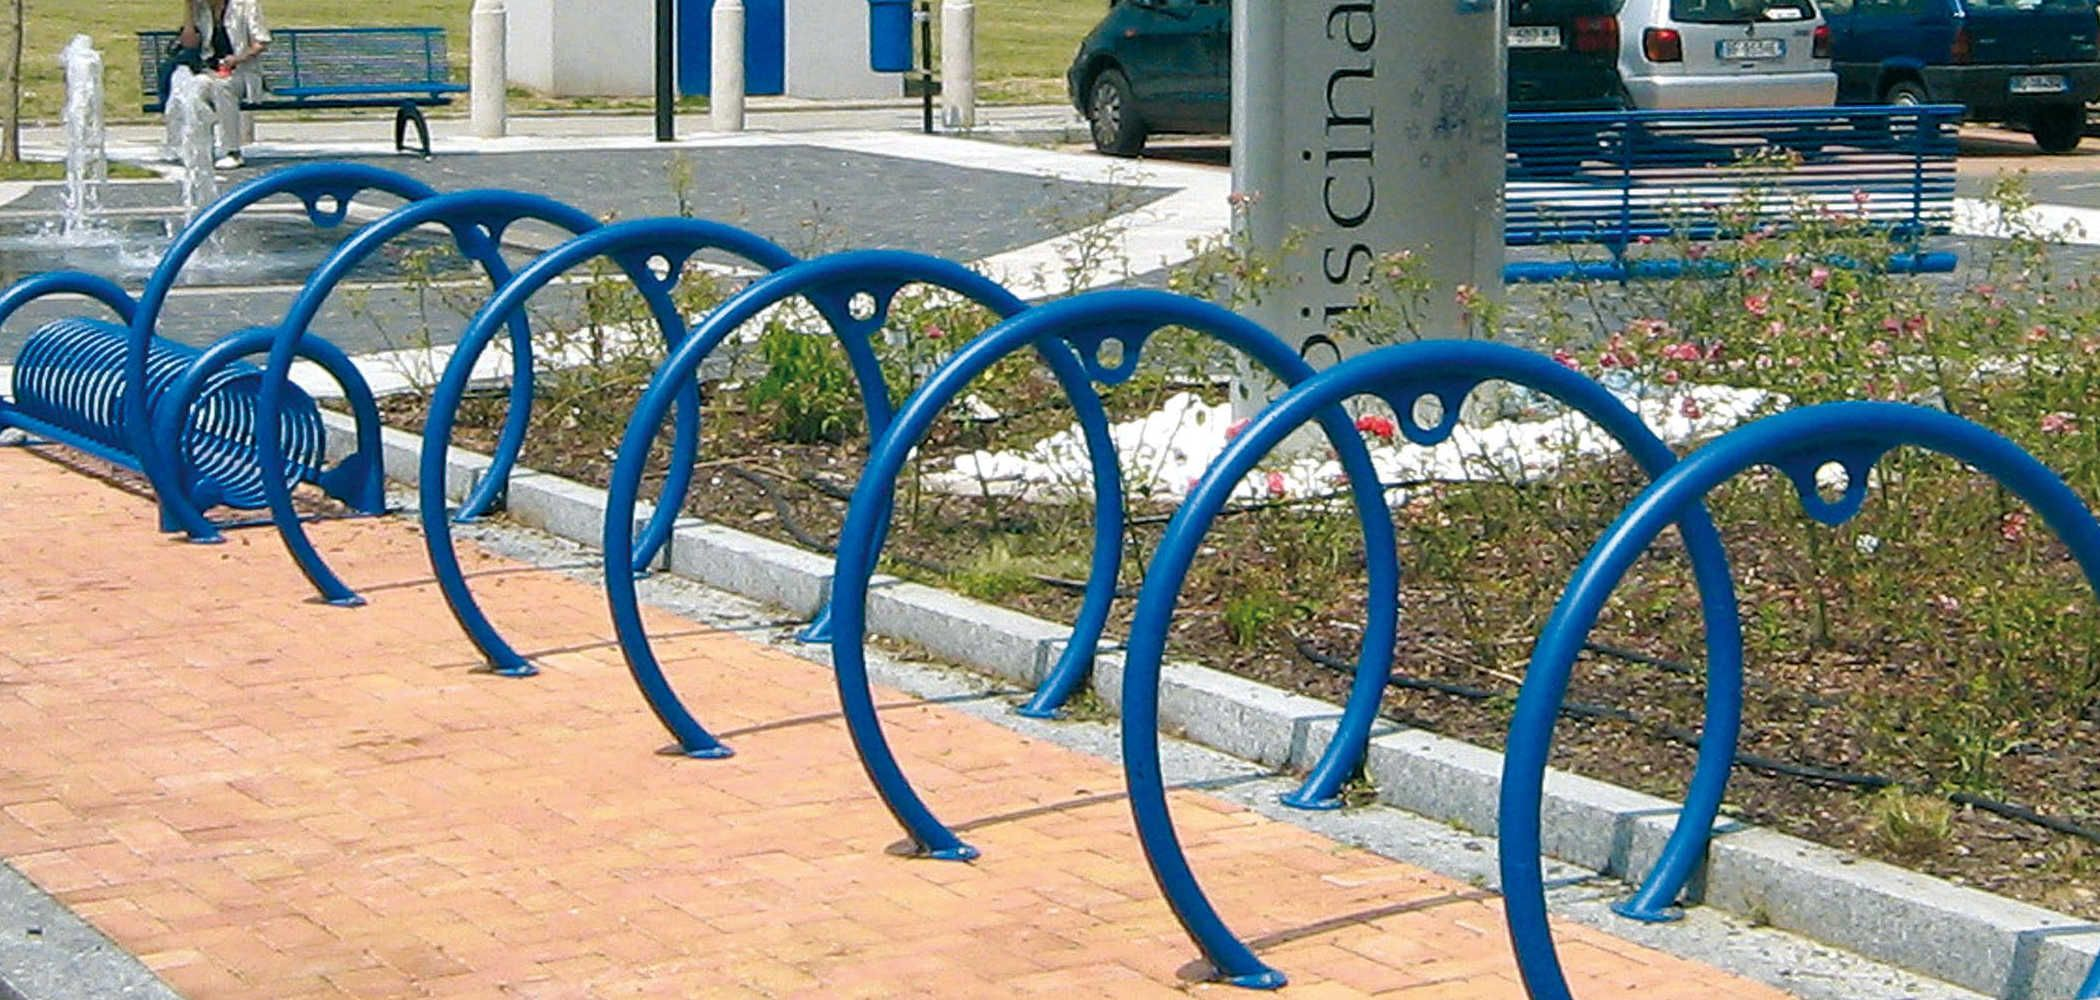 Bike rack made from bent tubular steel with decorative element designed to attach bikes or & Bike rack made from bent tubular steel with decorative element ...